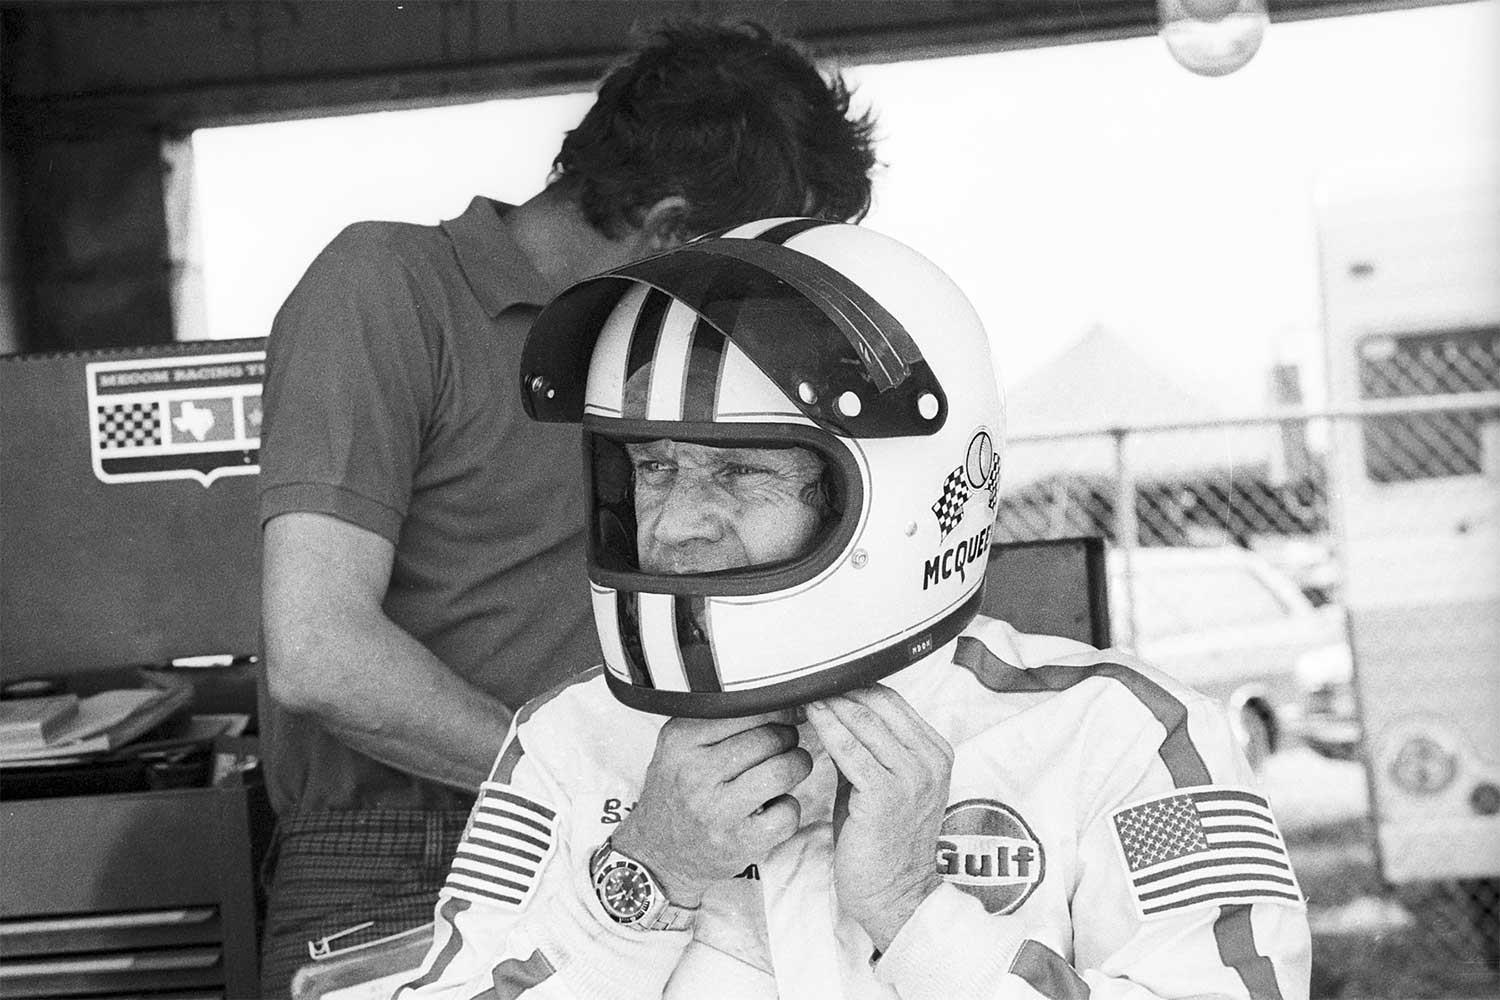 Steve McQueen, 12 Hours of Sebring, Sebring, 21 March 1970. On his wrist, clear as day is the 5512 Submariner (Photo by Bernard Cahier/Getty Images)